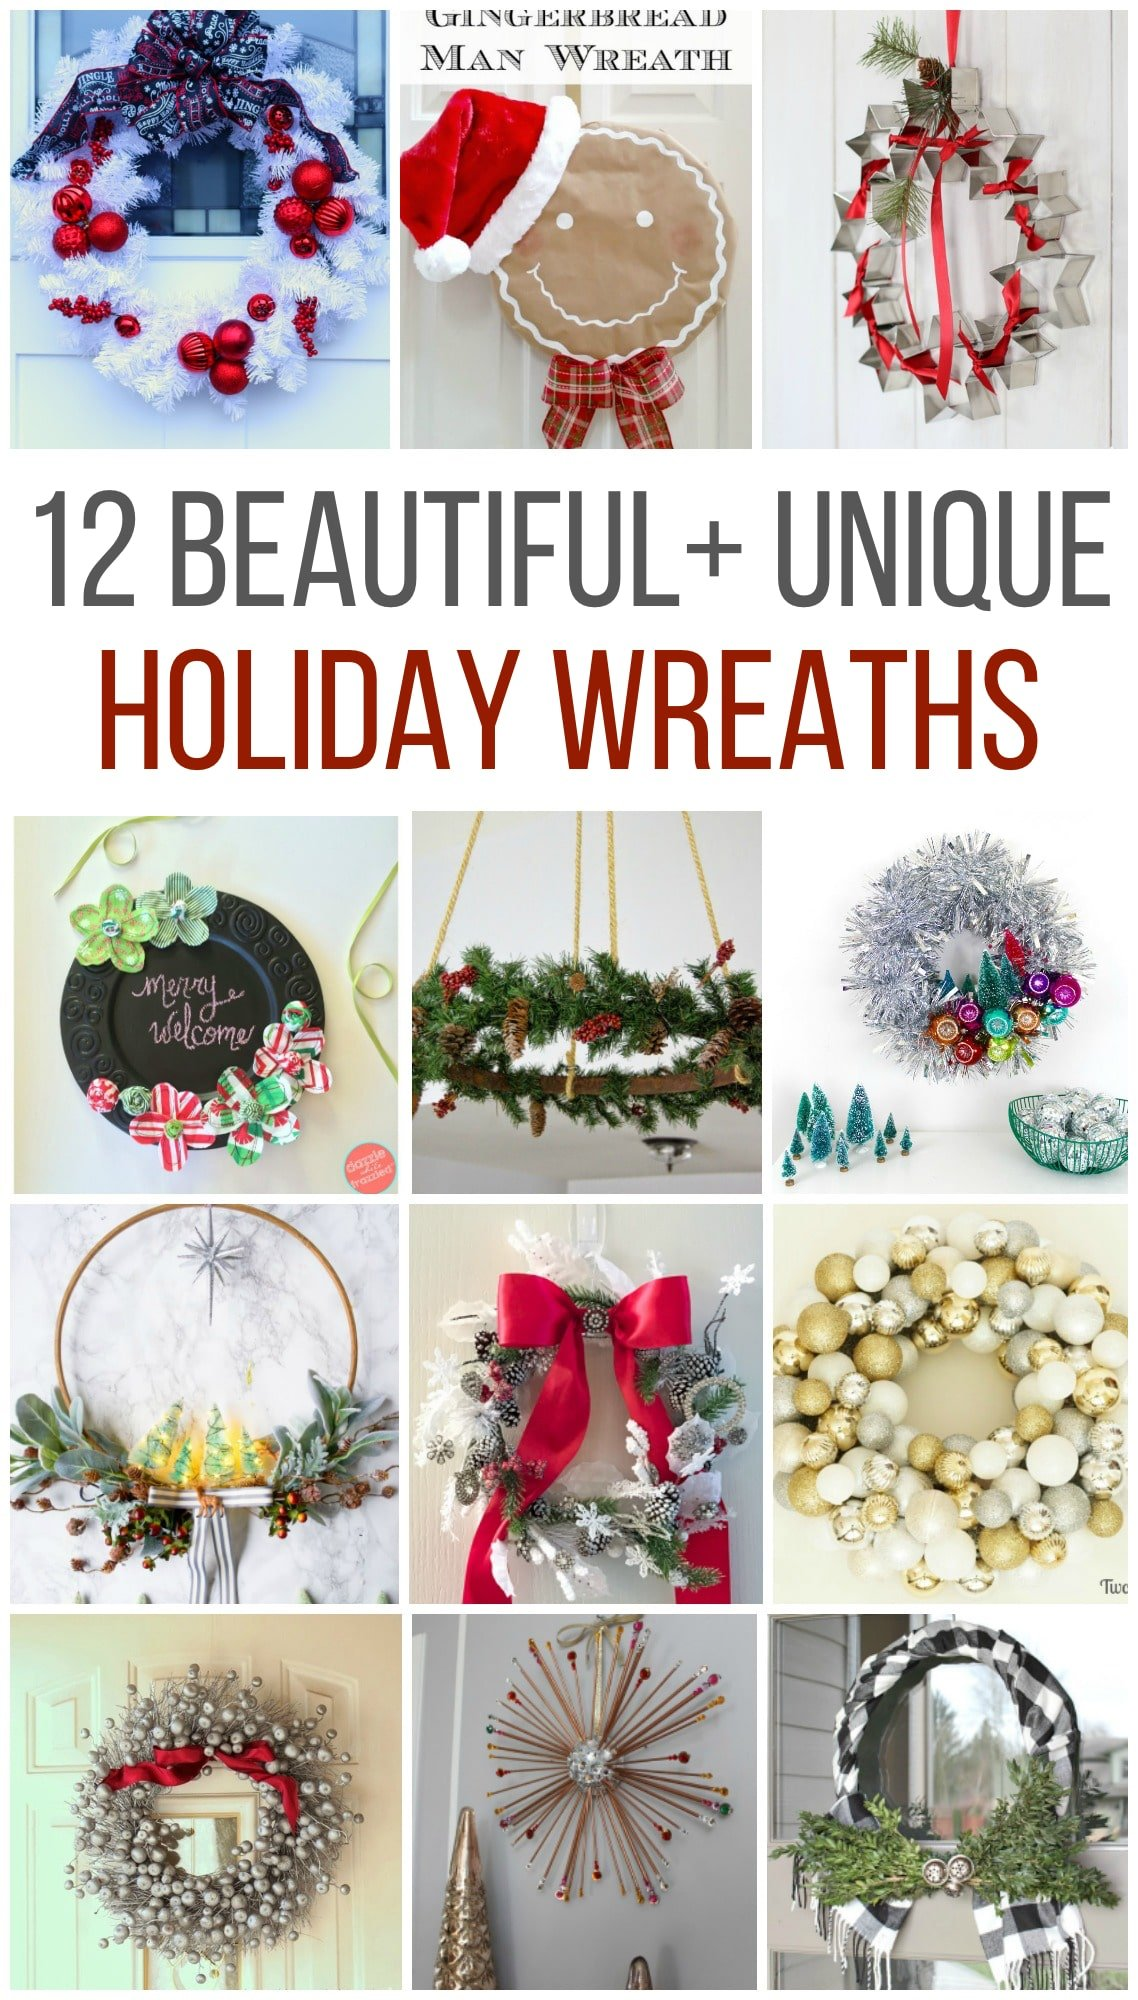 beautiful-unique-holiday-wreaths-madeinaday-com